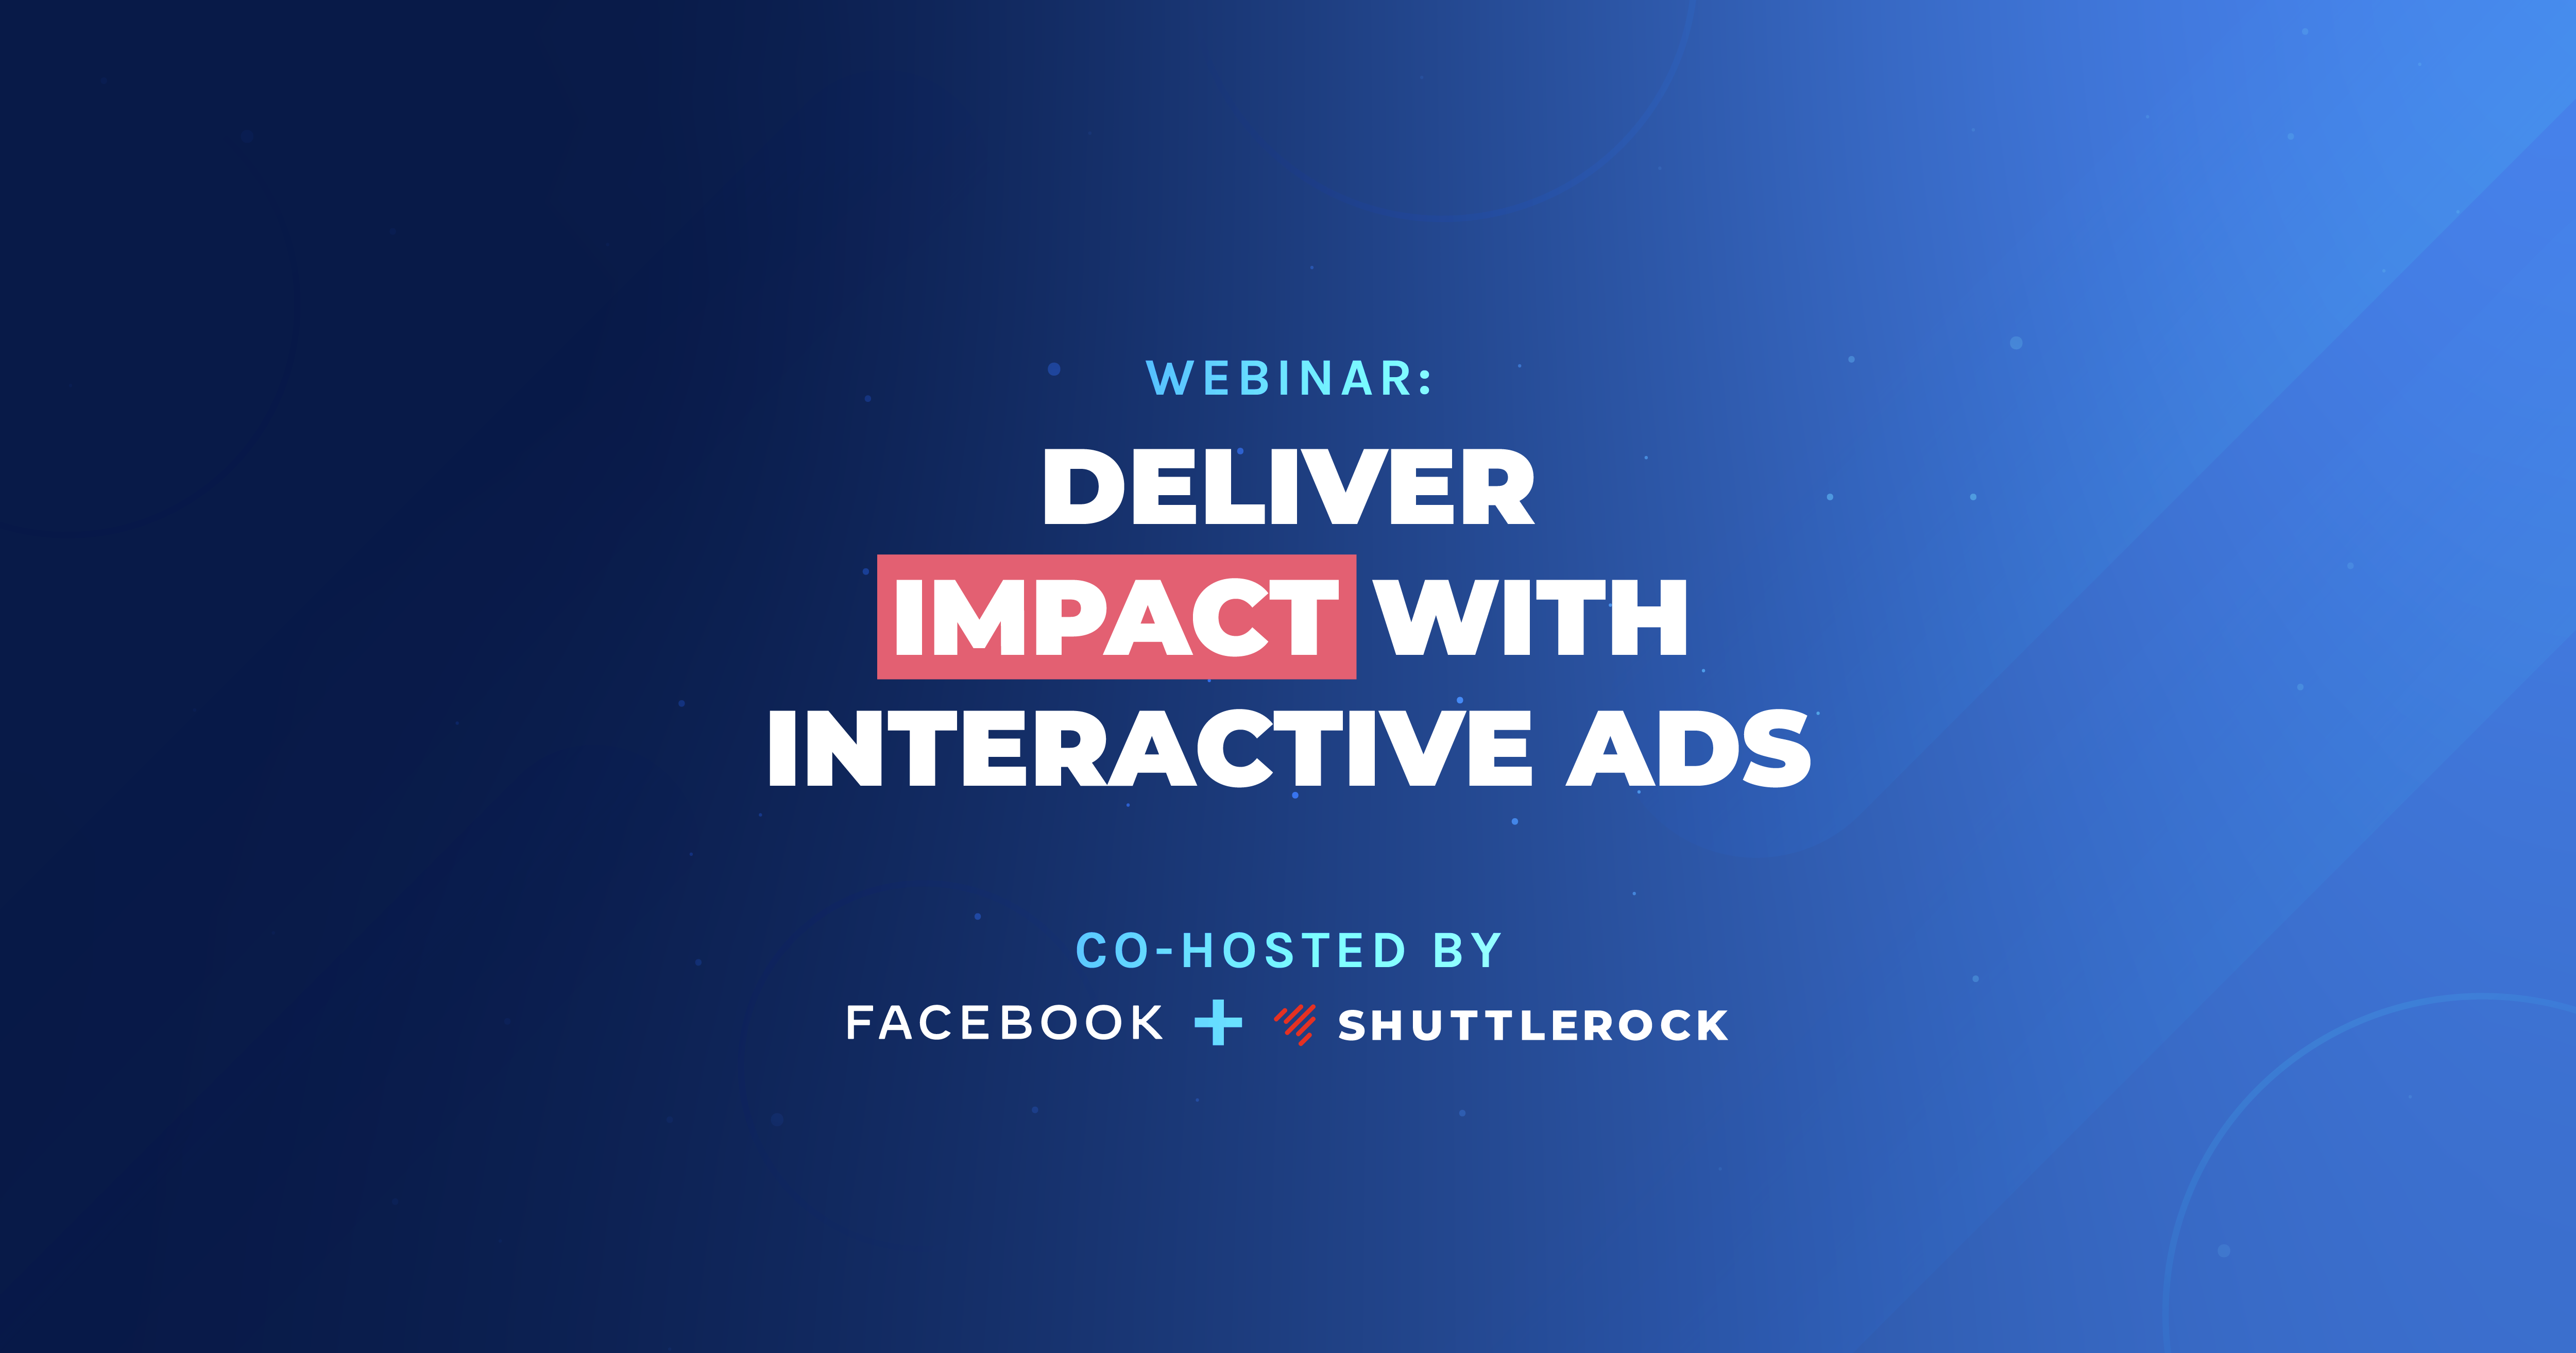 Facebook & Shuttlerock: Deliver Impact with Interactive Ads